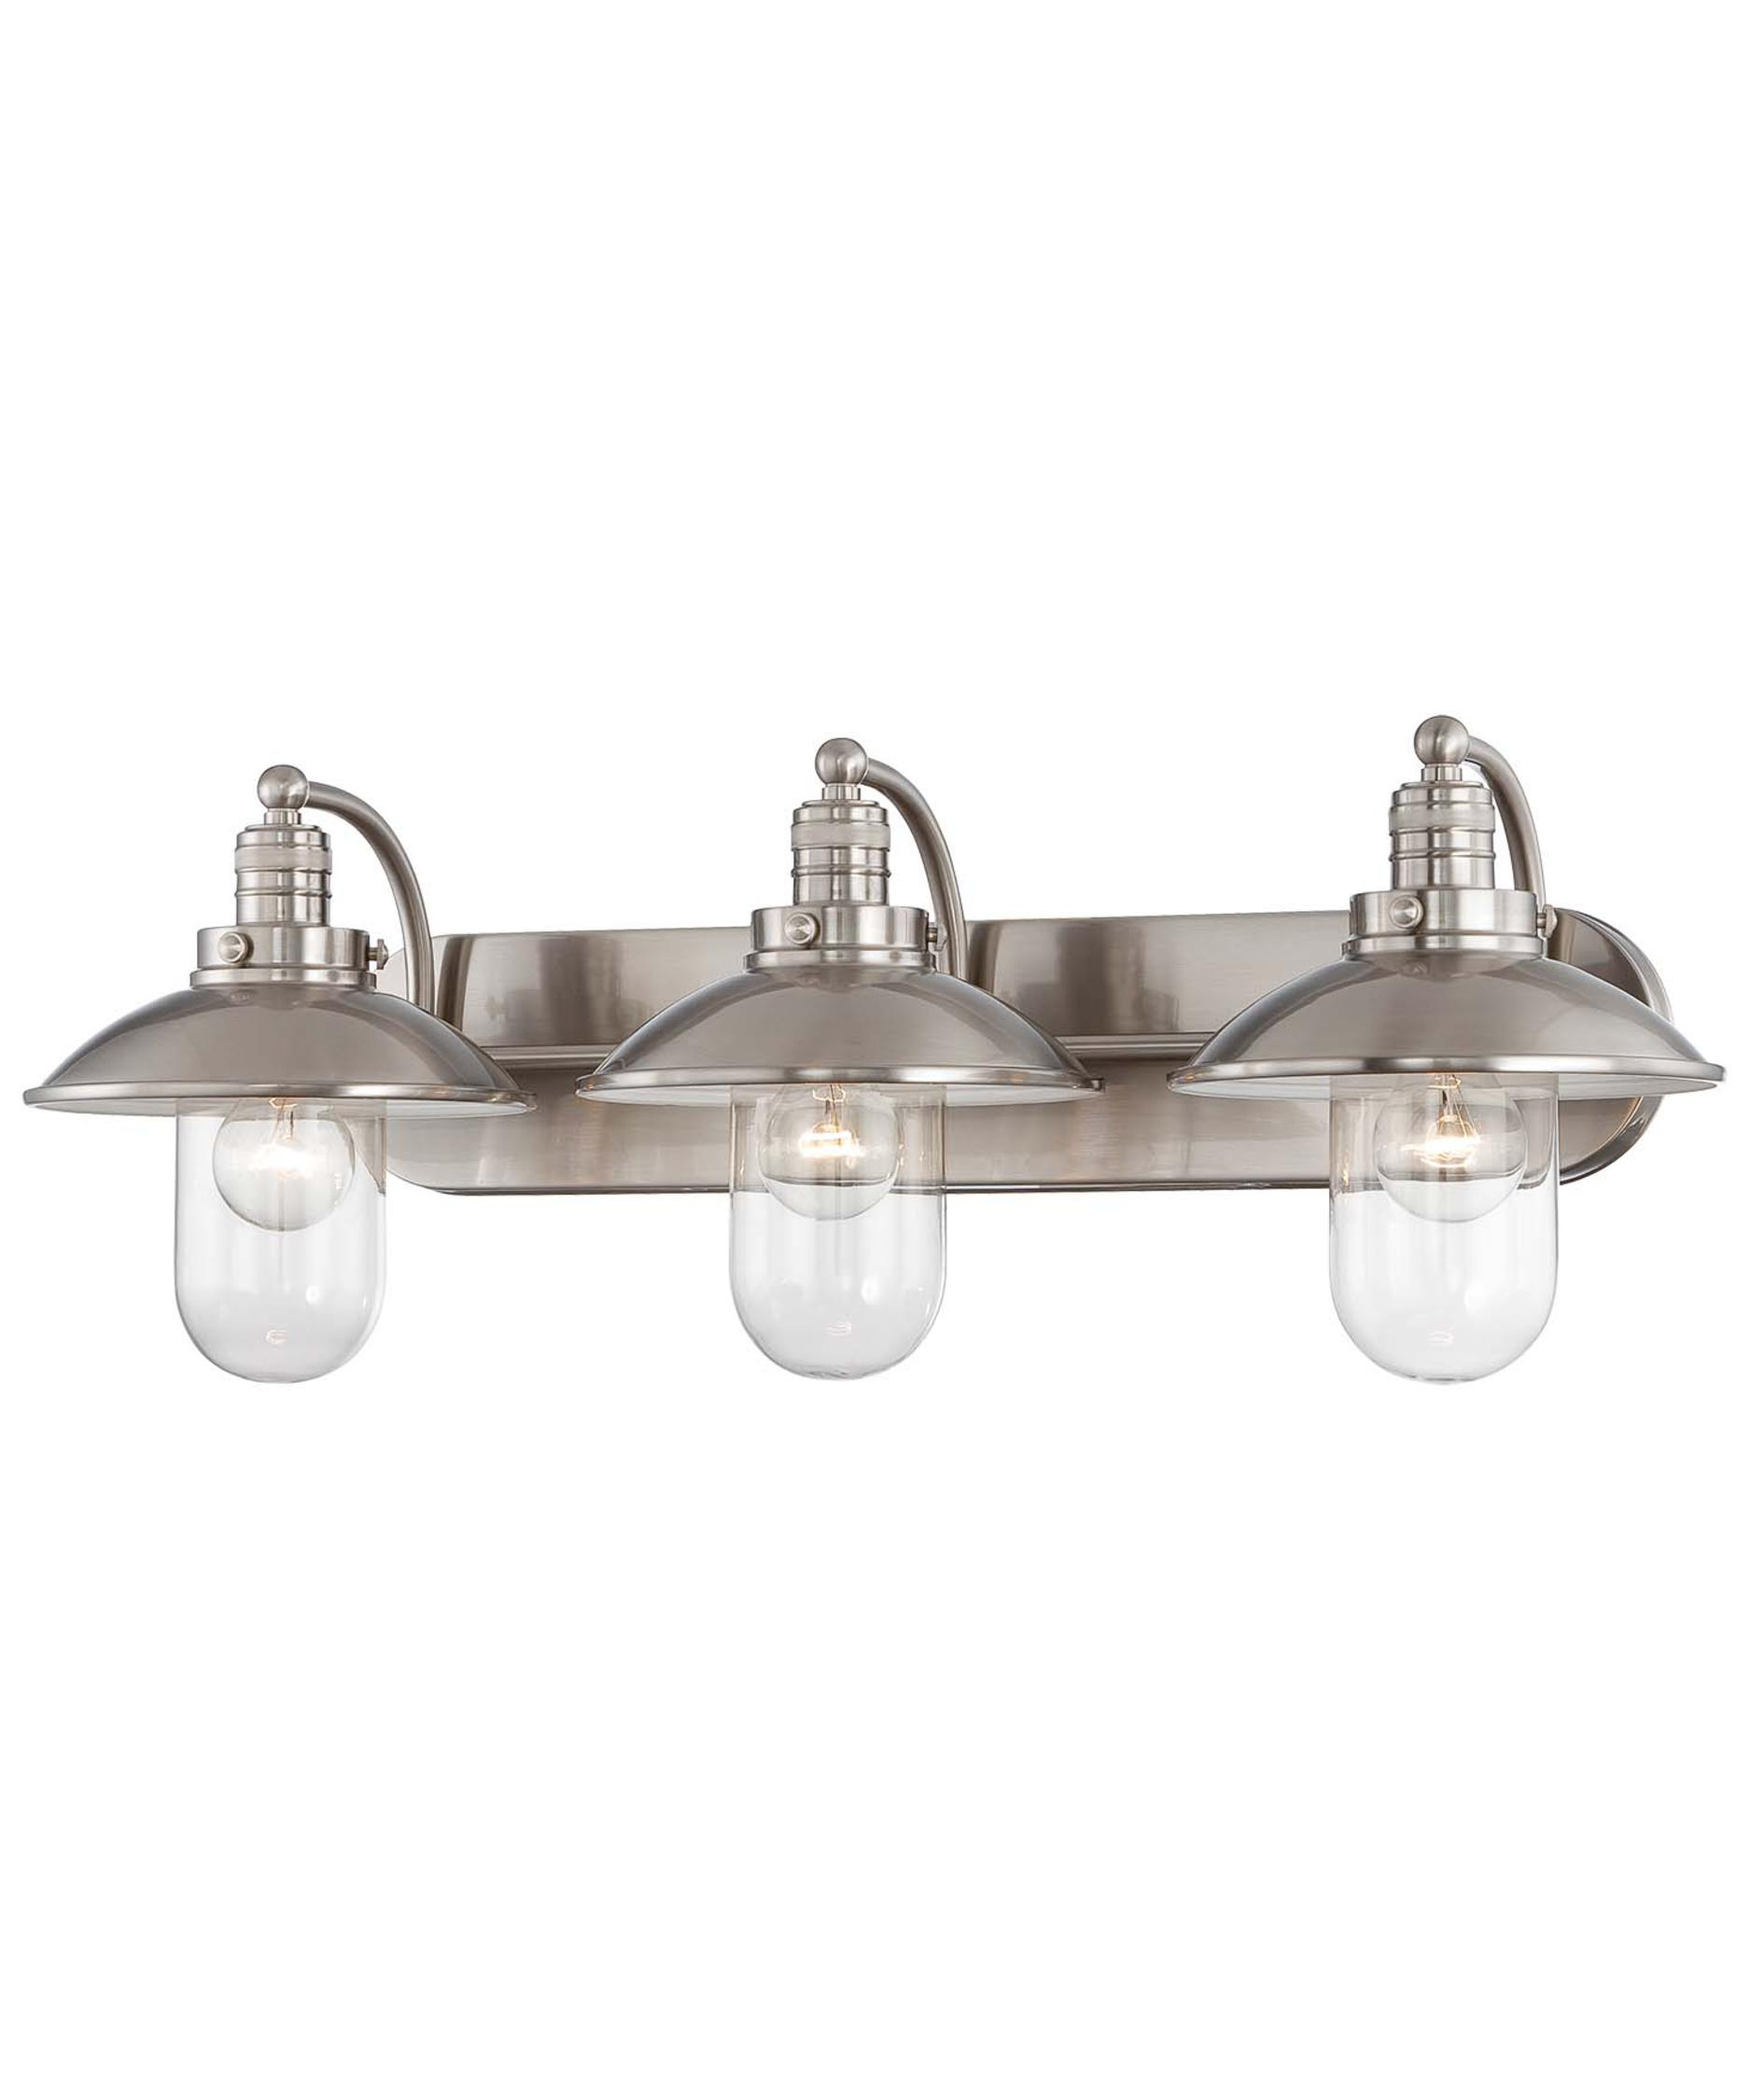 Bathroom vanity lights brushed nickel - Shown In Brushed Nickel Finish And Clear Glass